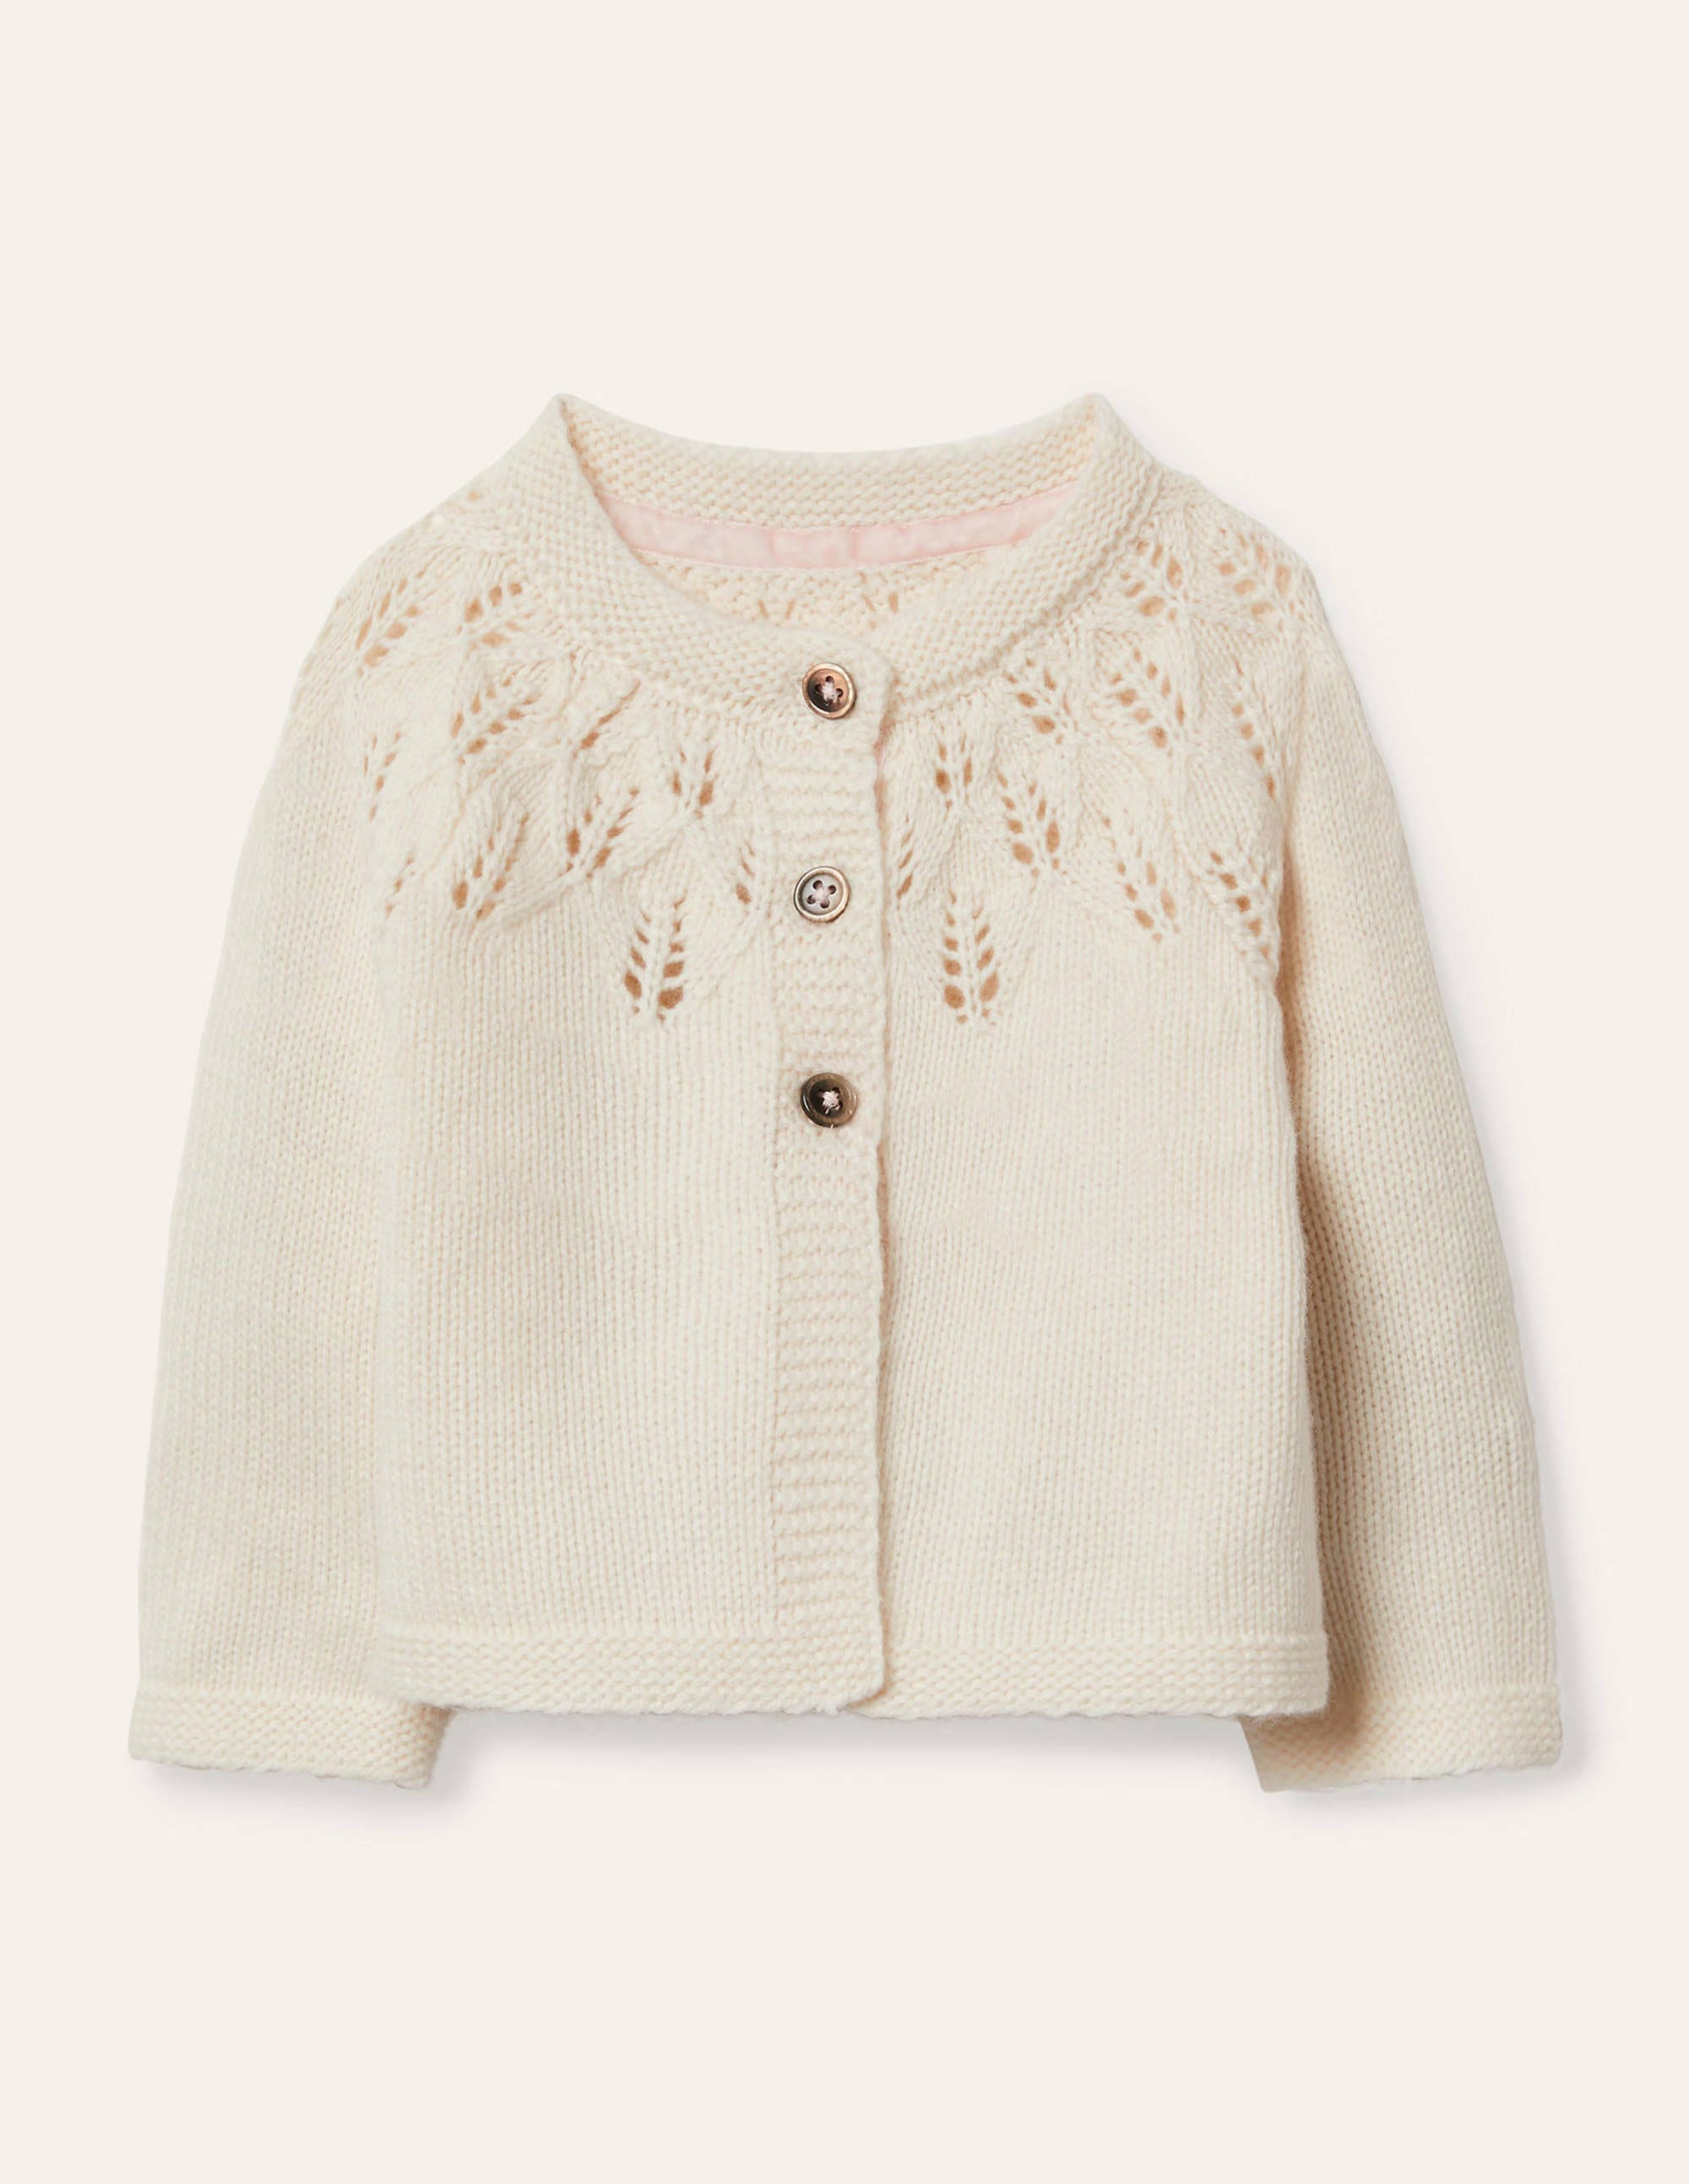 Boden Everyday Textured Cardigan - Ecru Marl